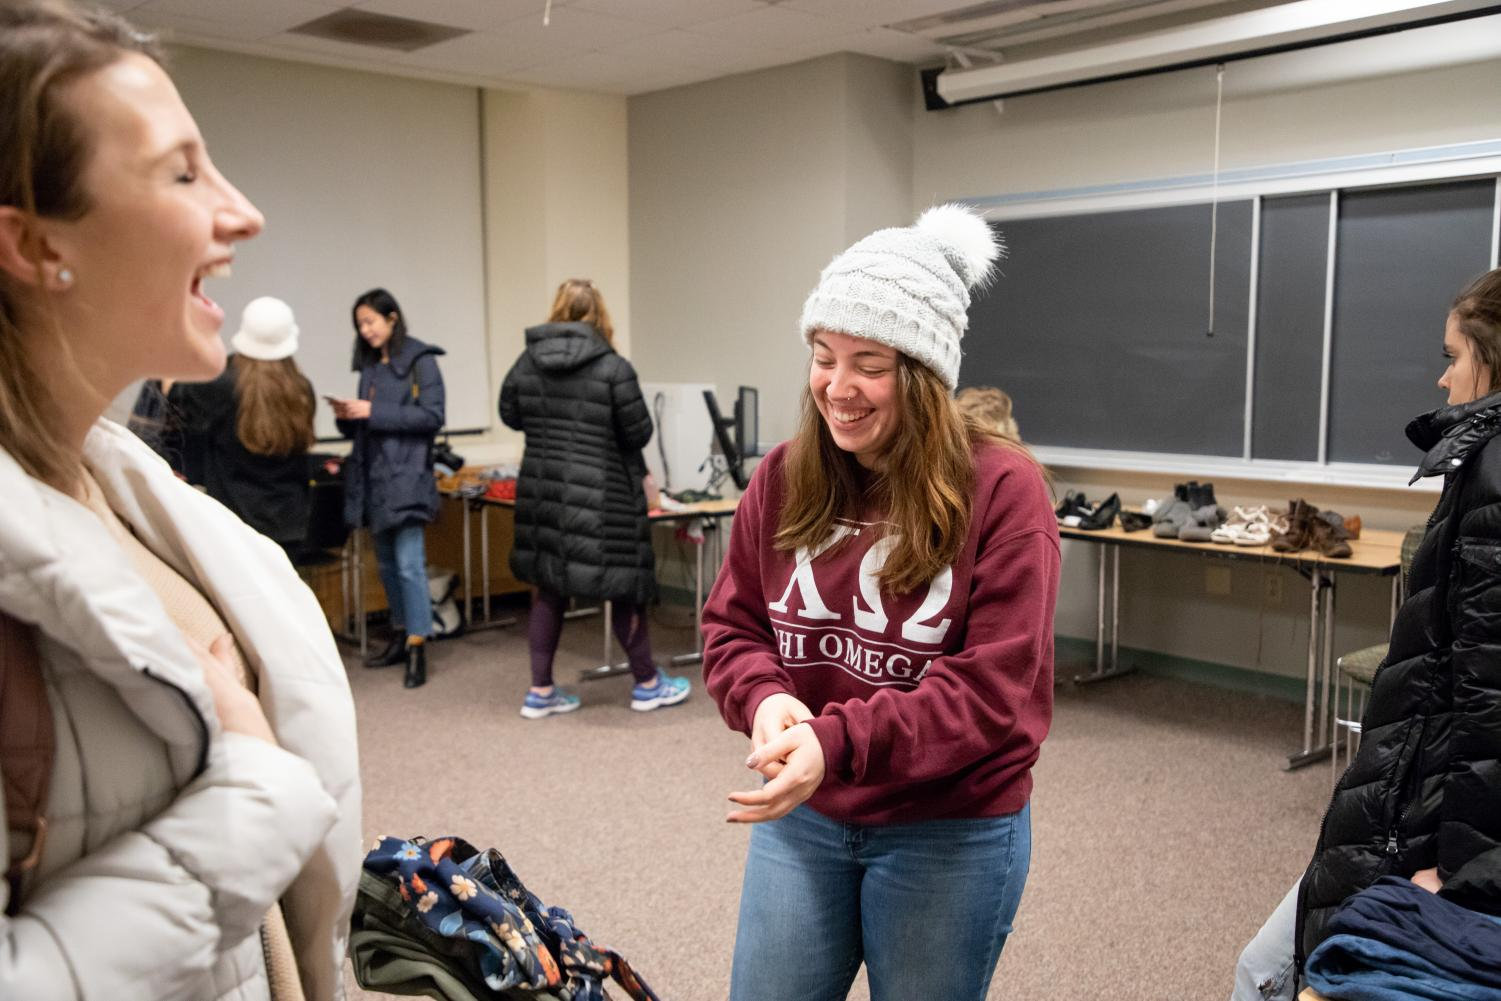 Director of Trash2Treasure marketing Jackie Arce, a 4th year design major, laughs with participants at the clothing exchange.